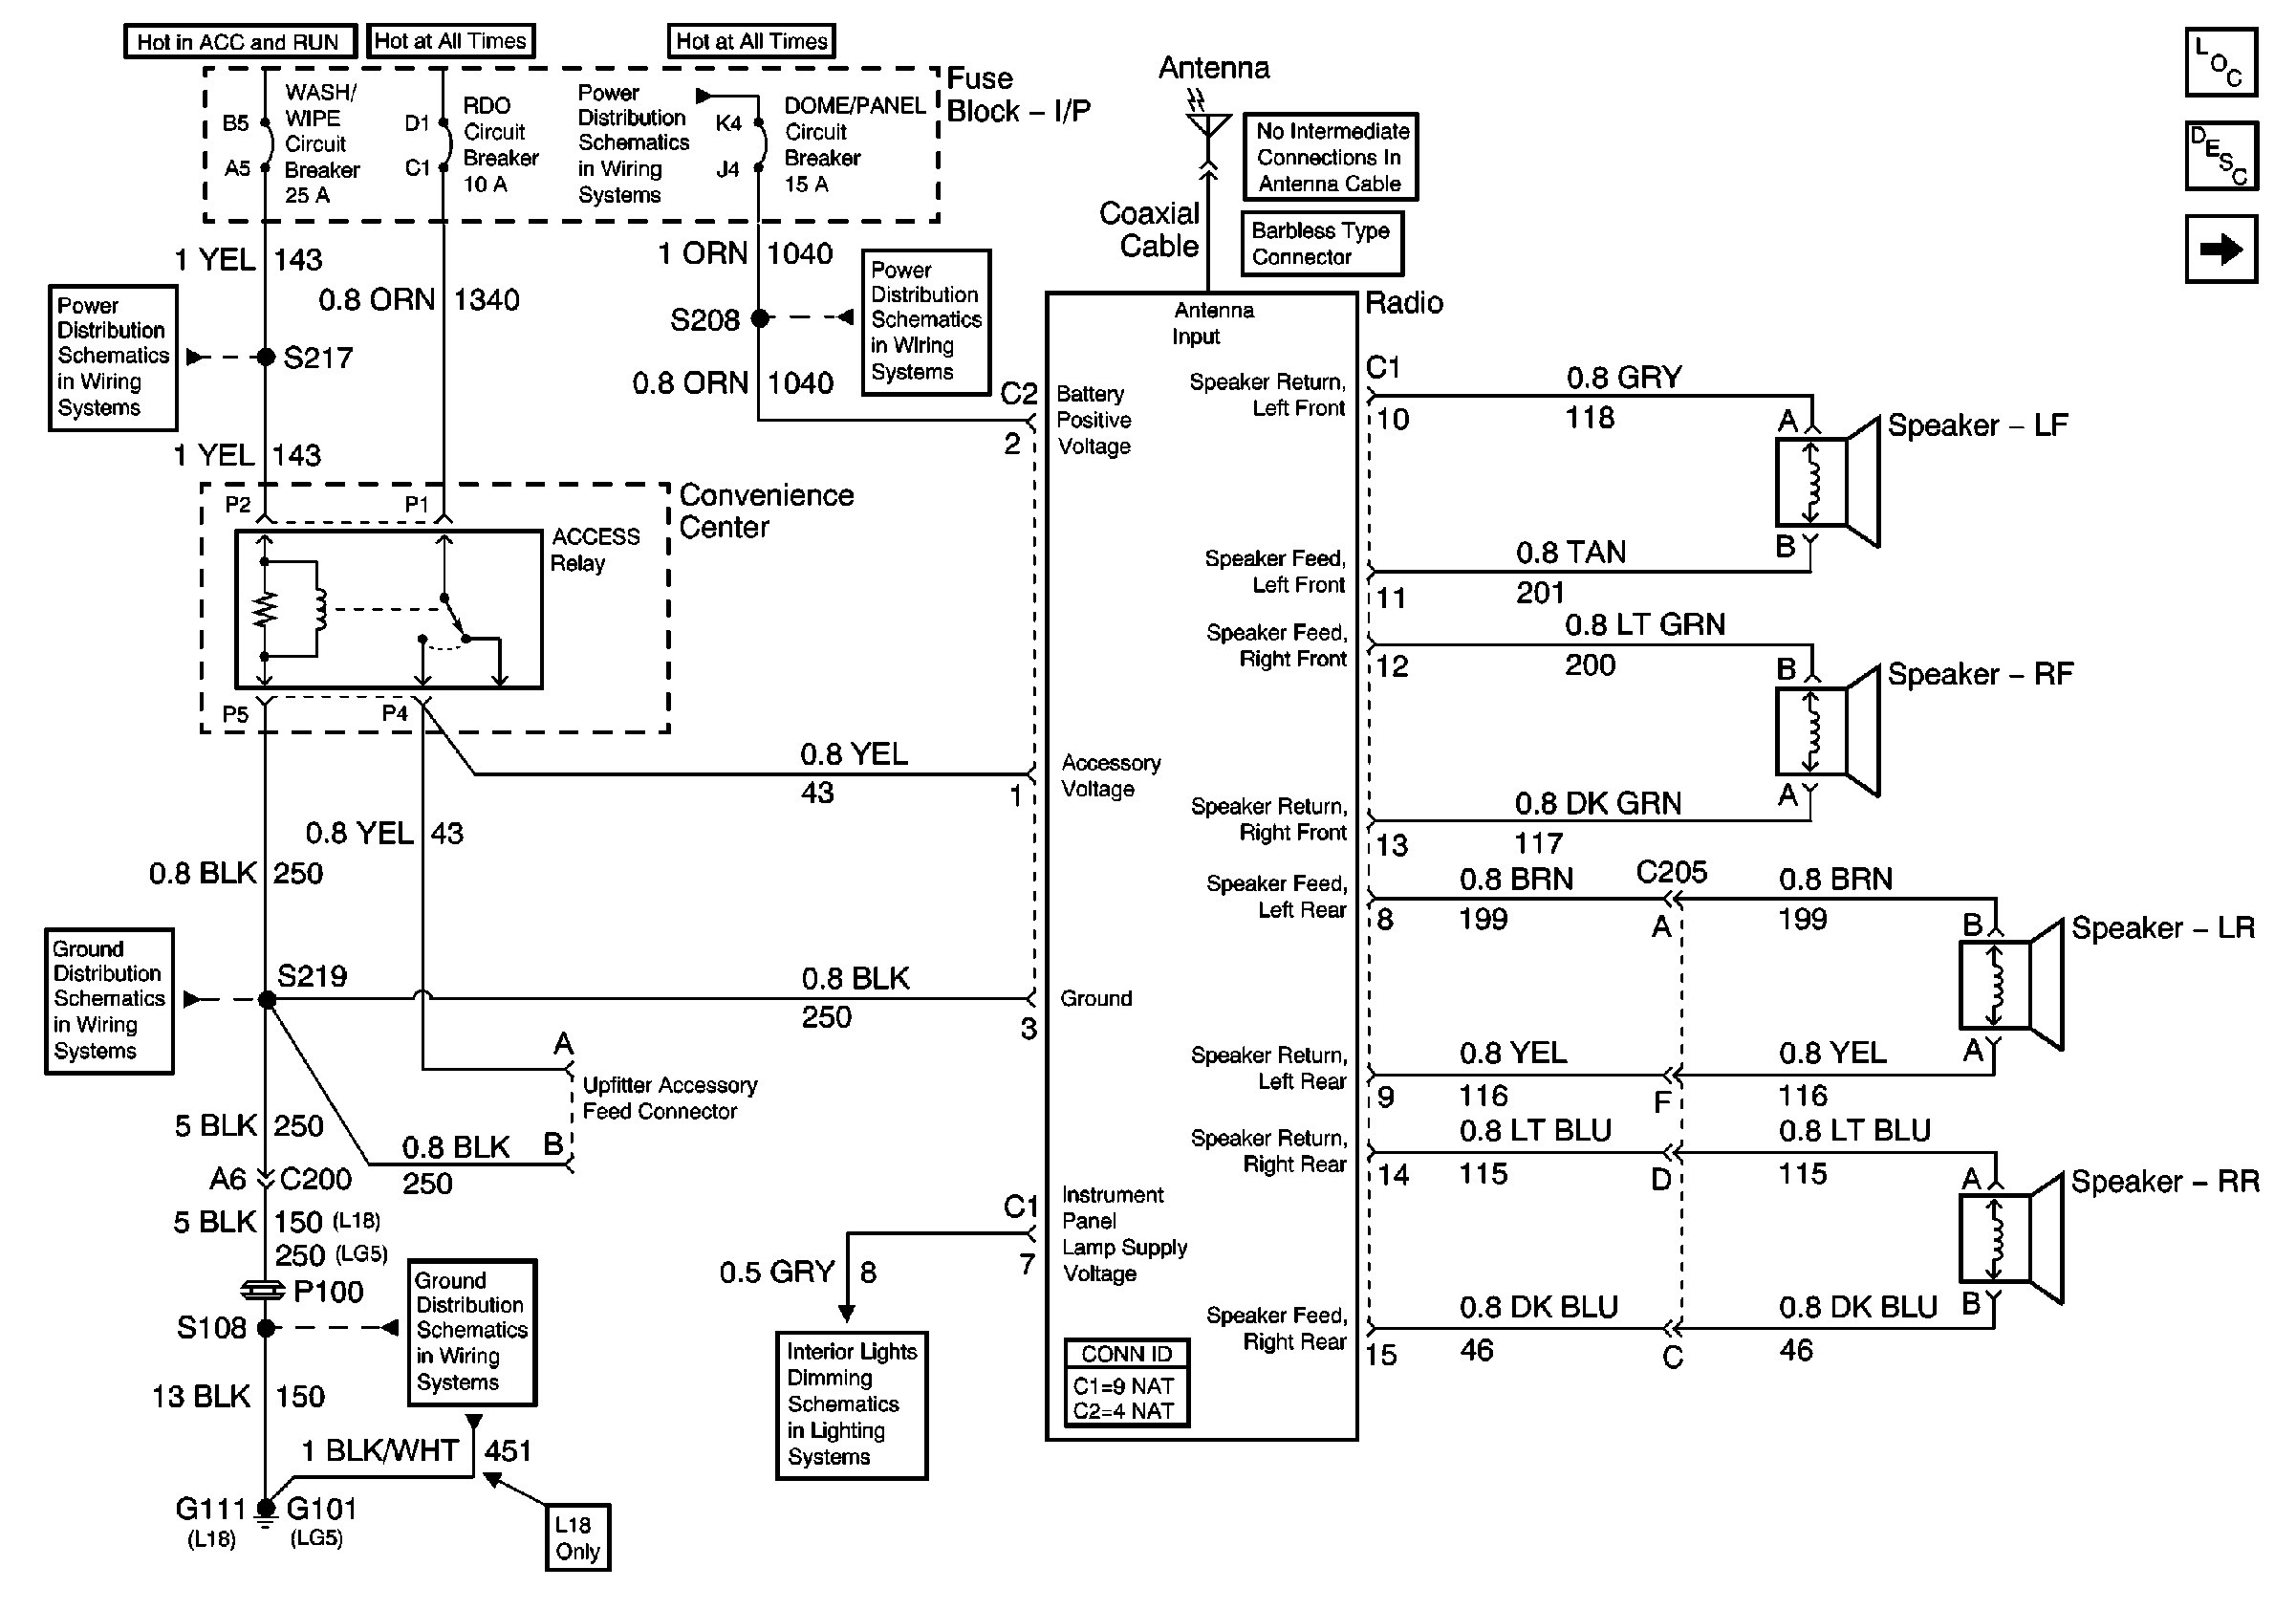 Diagram 2000 Gmc Safari Pcm Wiring Diagram Full Version Hd Quality Wiring Diagram Diagrammaudr Ecoldo It